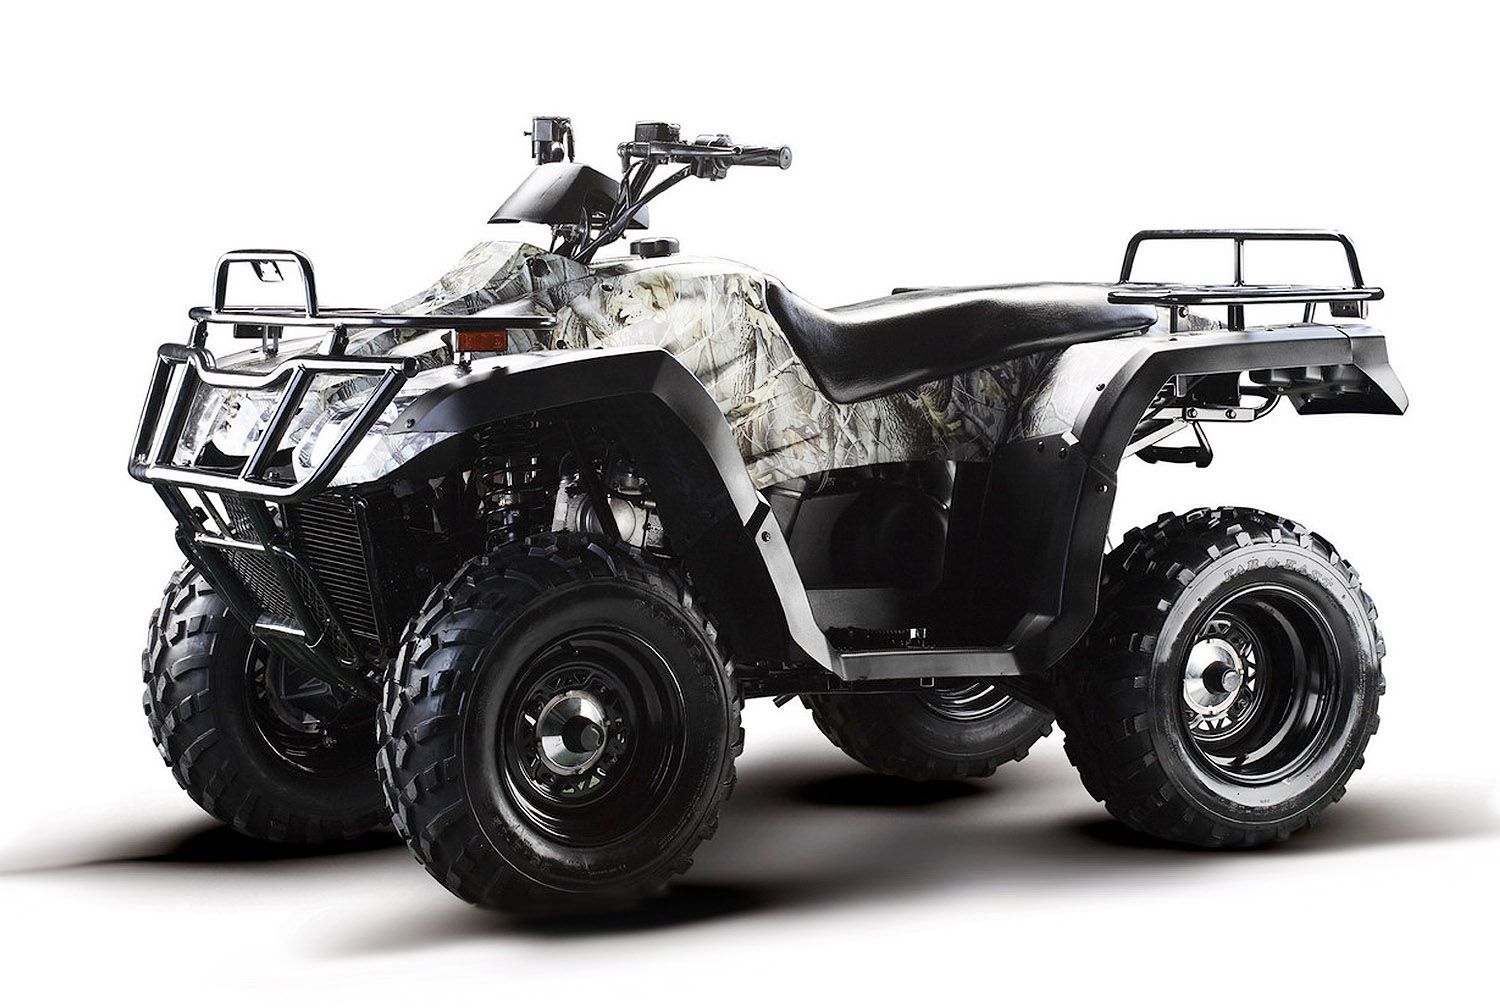 300cc hunter 300 s1 4x4 winch 4x federung motostar atv kros in oprema. Black Bedroom Furniture Sets. Home Design Ideas